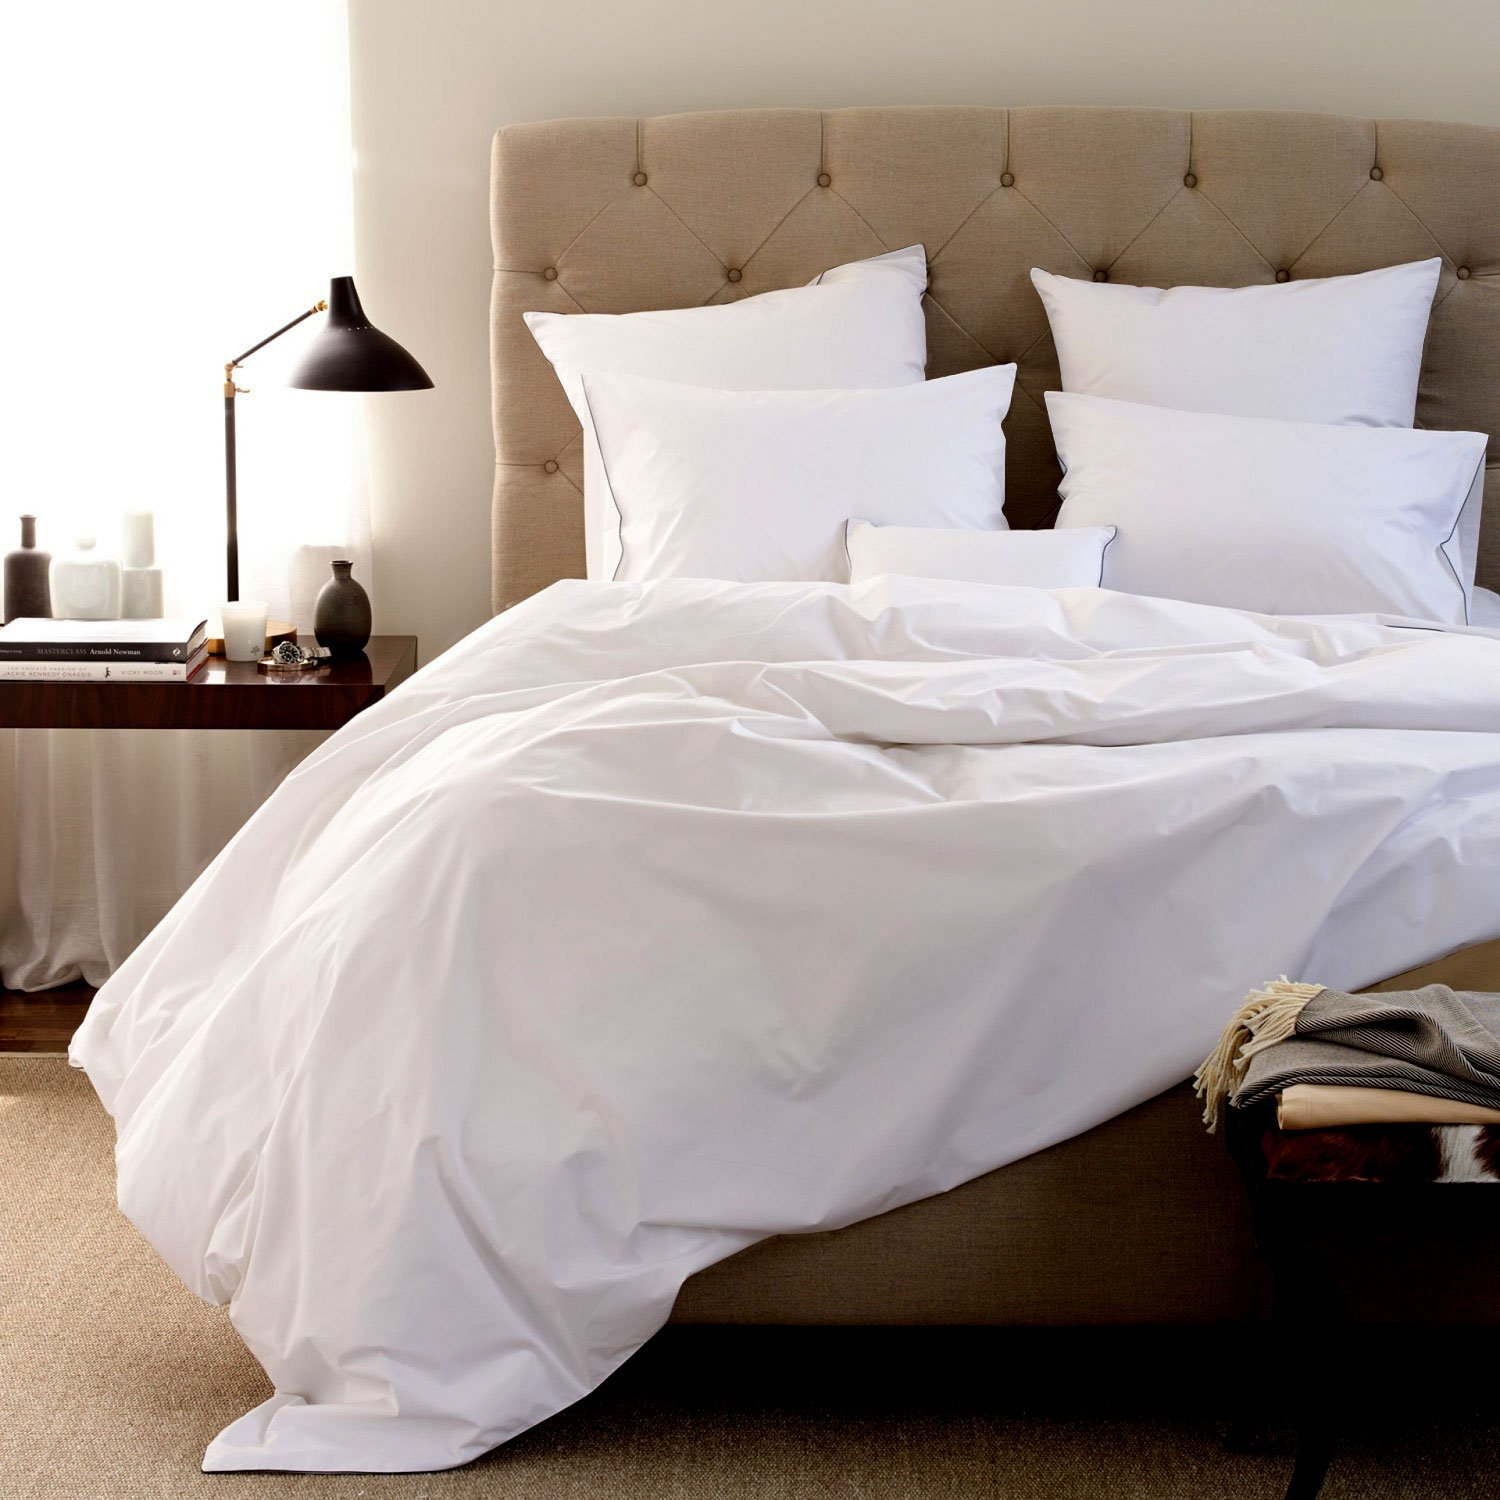 Organic Bed Sheets-Size-KING, Color-WHITE sheets are comfortable and ultra-soft & silky# Made in India 800 Thread Count - 100% Organic Cotton 4pc Bed Sheet Set With 21 INCHES DEEP POCKET